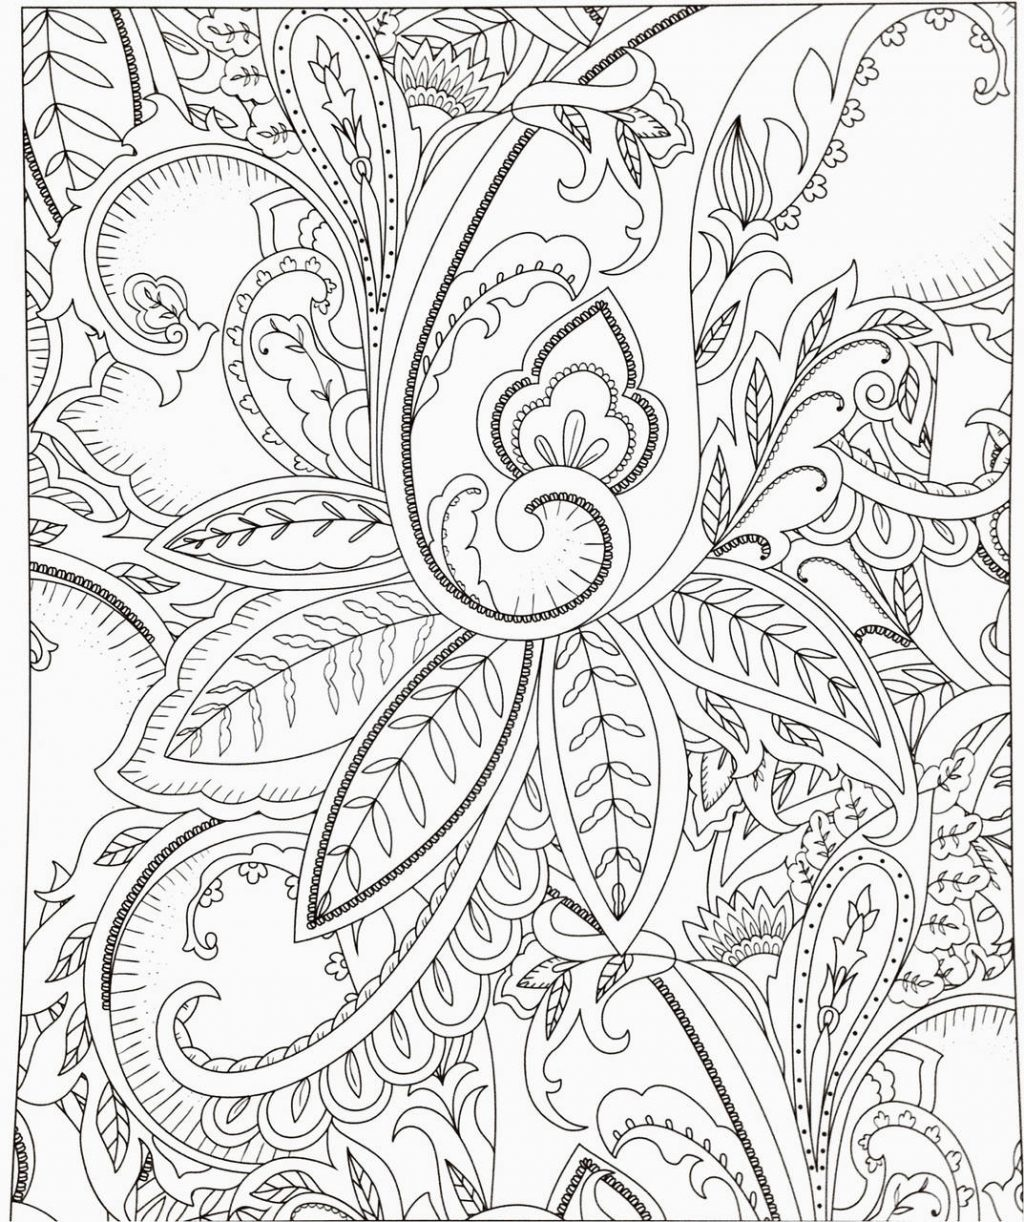 Coloring Page ~ Free Printable Pyrography Patterns Awesome Lizards - Free Printable Pyrography Patterns